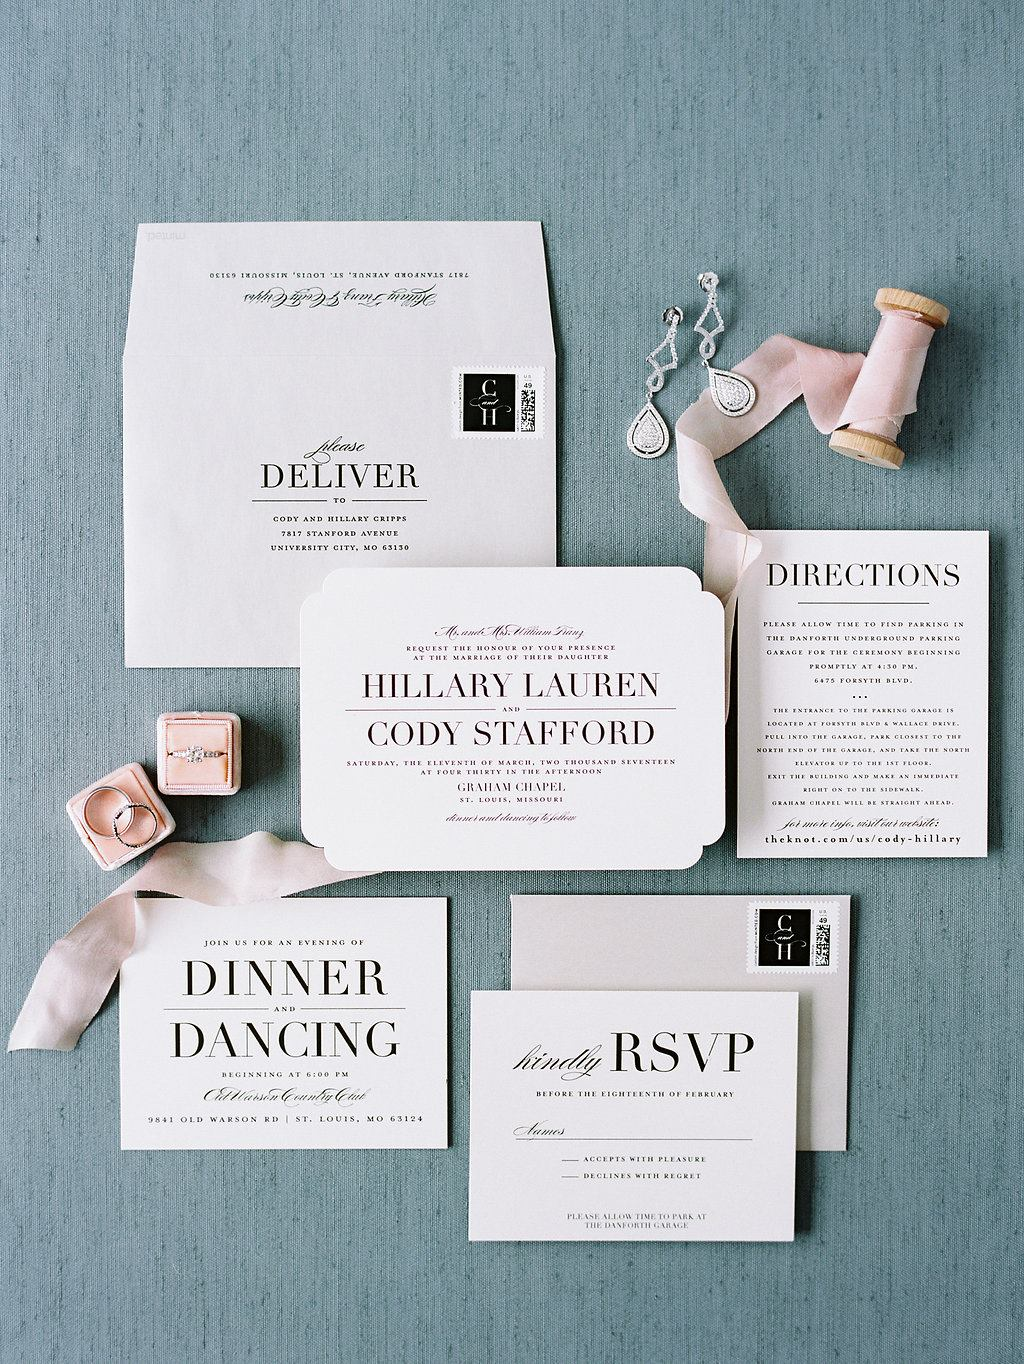 Wedding Wednesday: Invitations By Minted - Shop Hillary Cripps